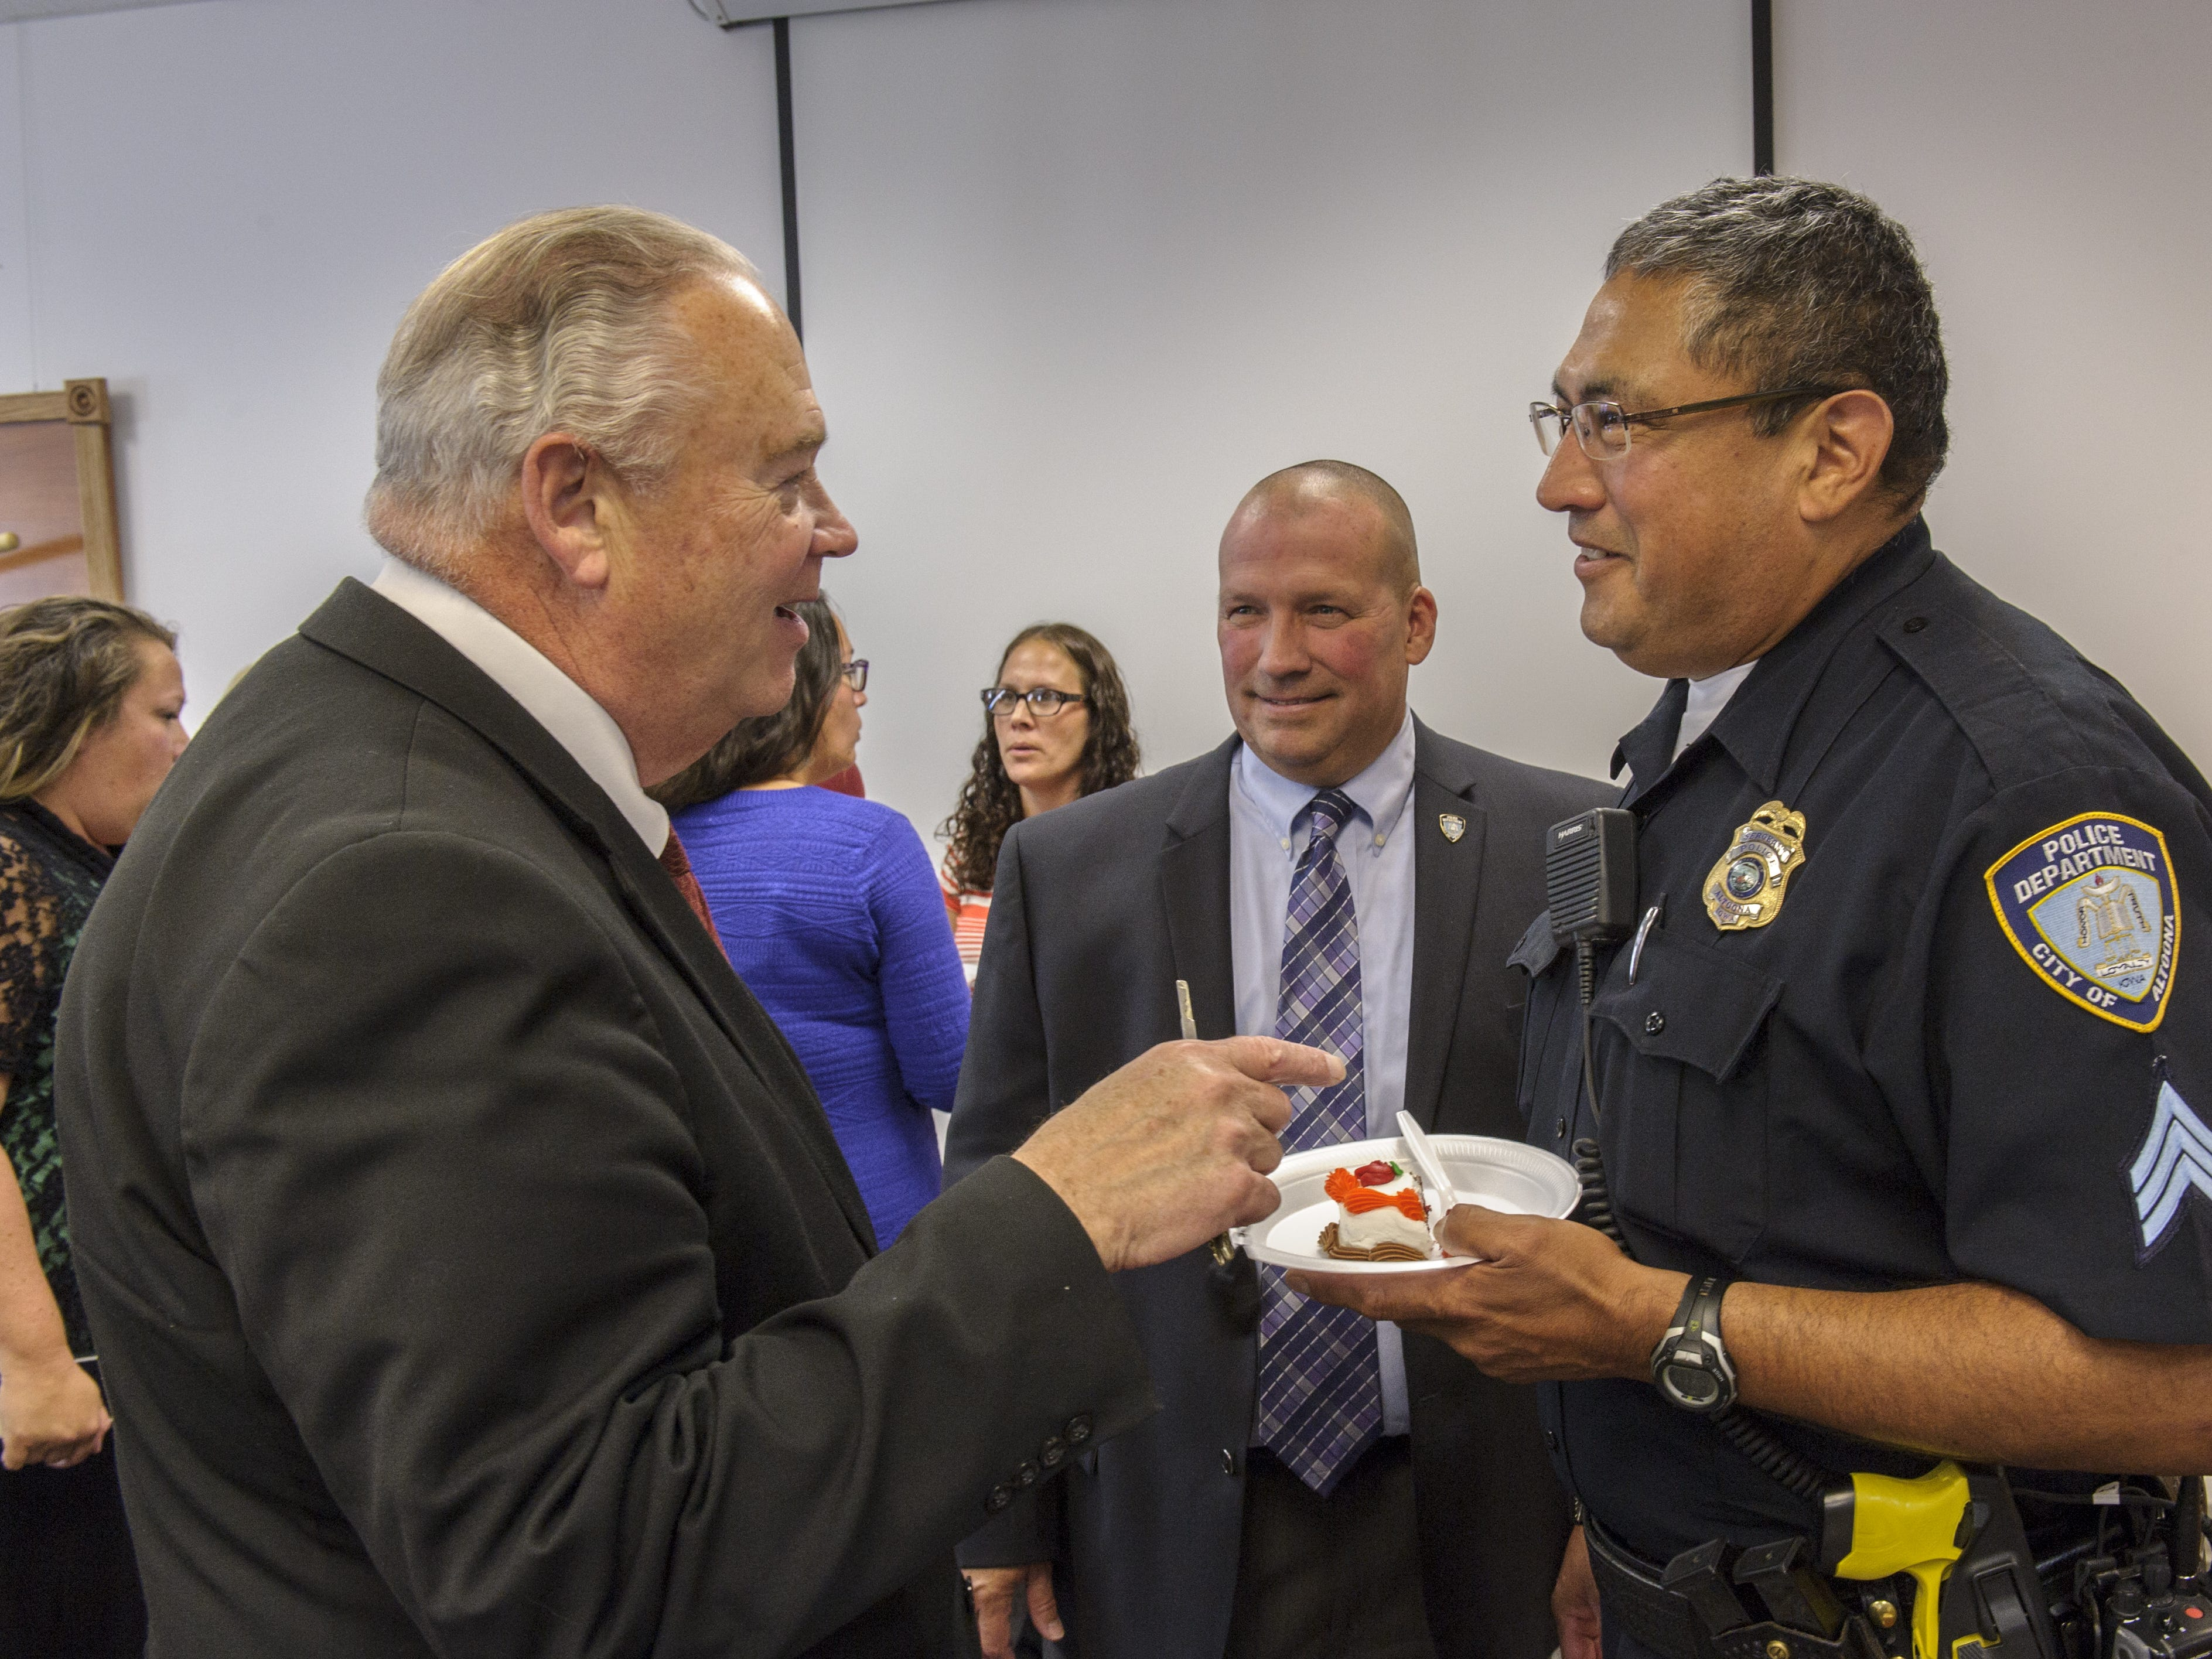 After 36 years Royal Nahno-Kerchee retired in 2015. Friends, family members and coworkers gathered to honor his service to the City of Altoona. Polk County Sheriff Bill McCarthy joined in on the celebration.